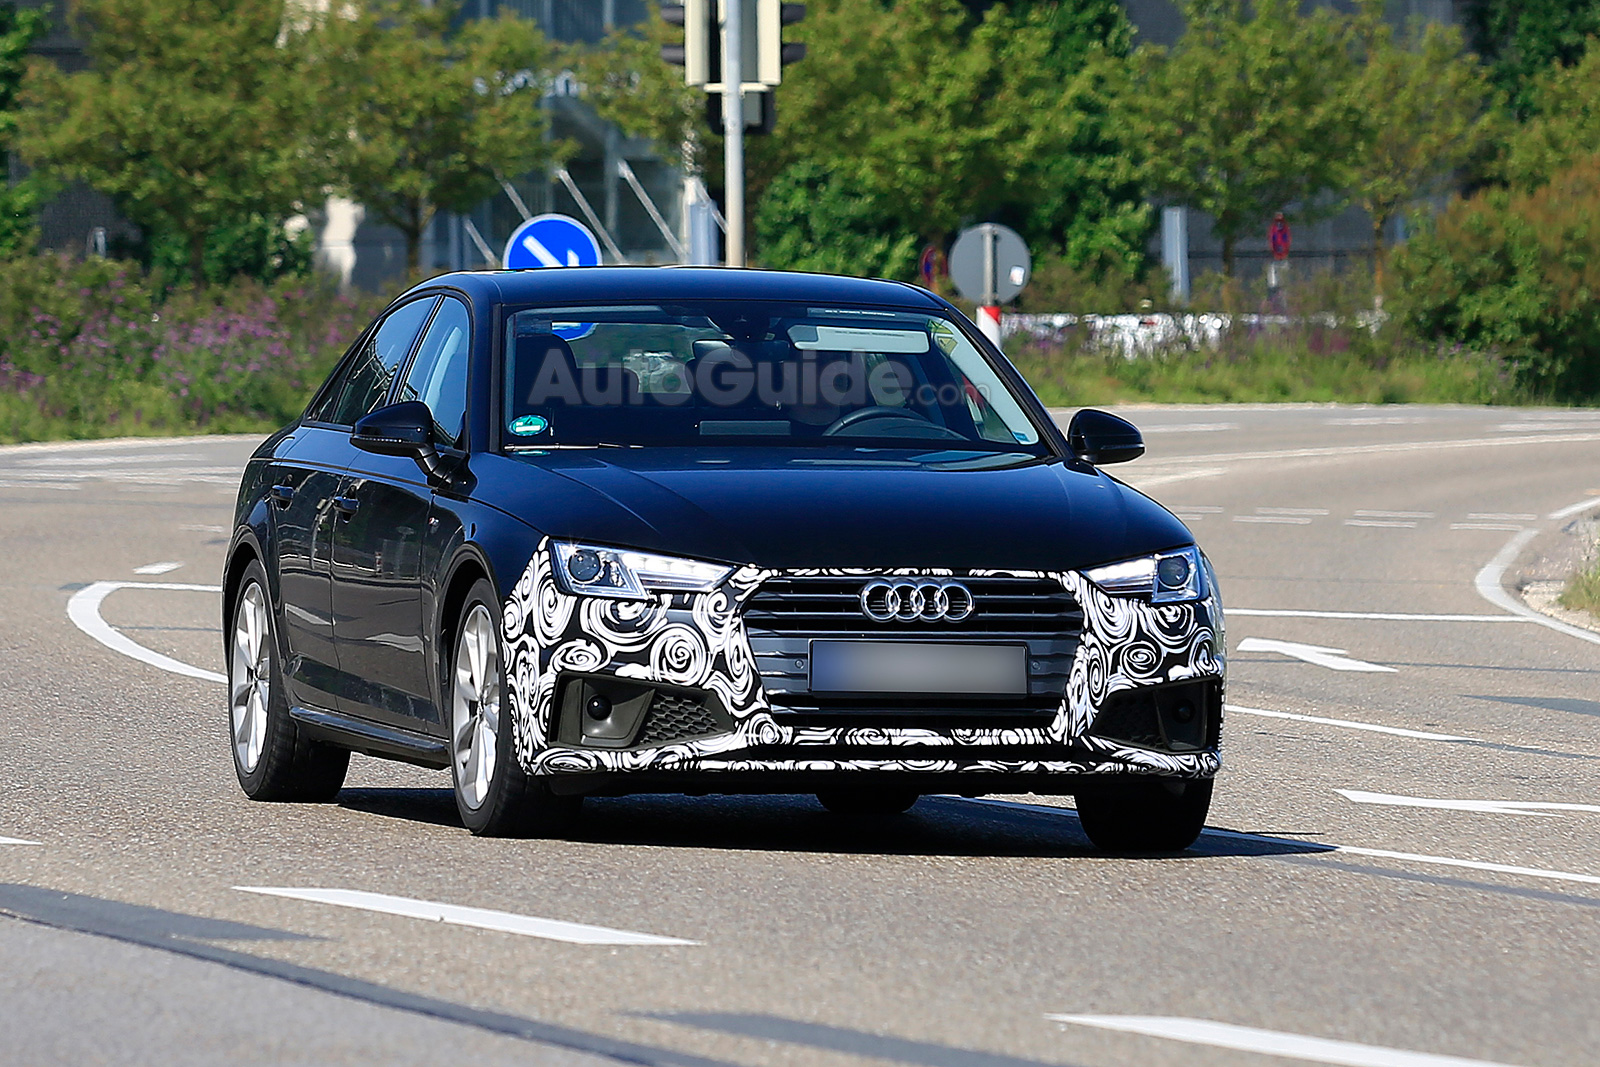 Spy Photographers Catch The Facelifted Audi A4 For First Time